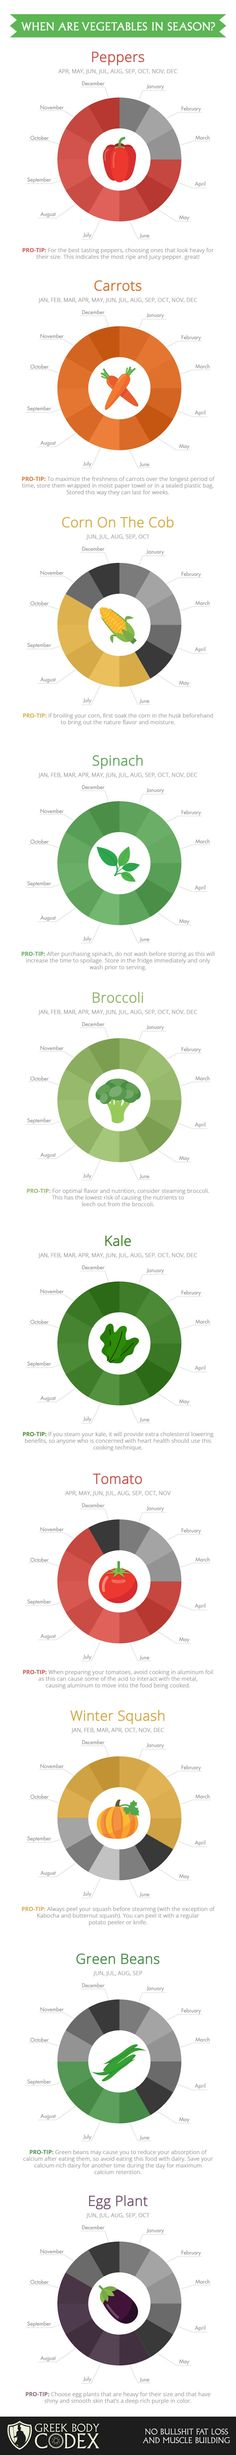 When Fruits & Veggies Are In Season (Infographic) Use this infographic to figure out when certain fruits veggies are in season!Use this infographic to figure out when certain fruits veggies are in season! Cooking Tips, Cooking Recipes, Healthy Recipes, Food Tips, Cooking Classes, Healthy Foods, Food Dog, Vegetable Seasoning, Food Facts